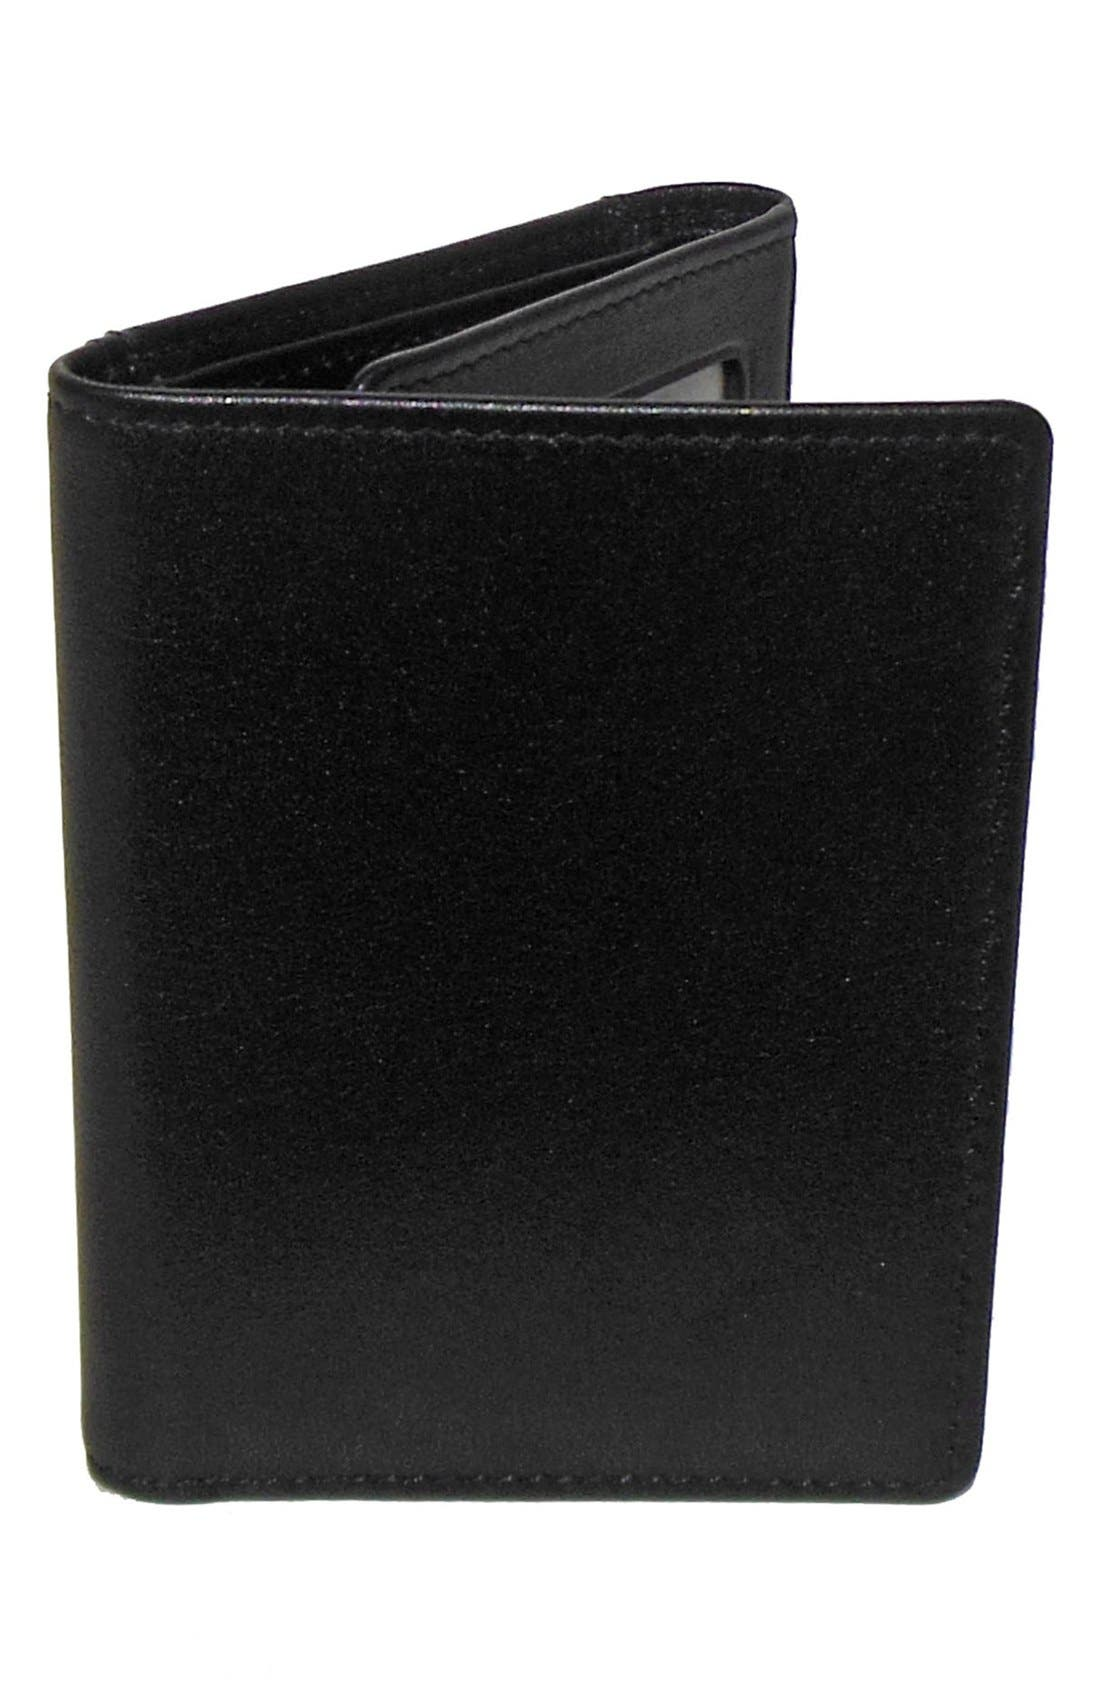 Main Image - Boconi 'Grant' RFID Blocker Leather Trifold Wallet